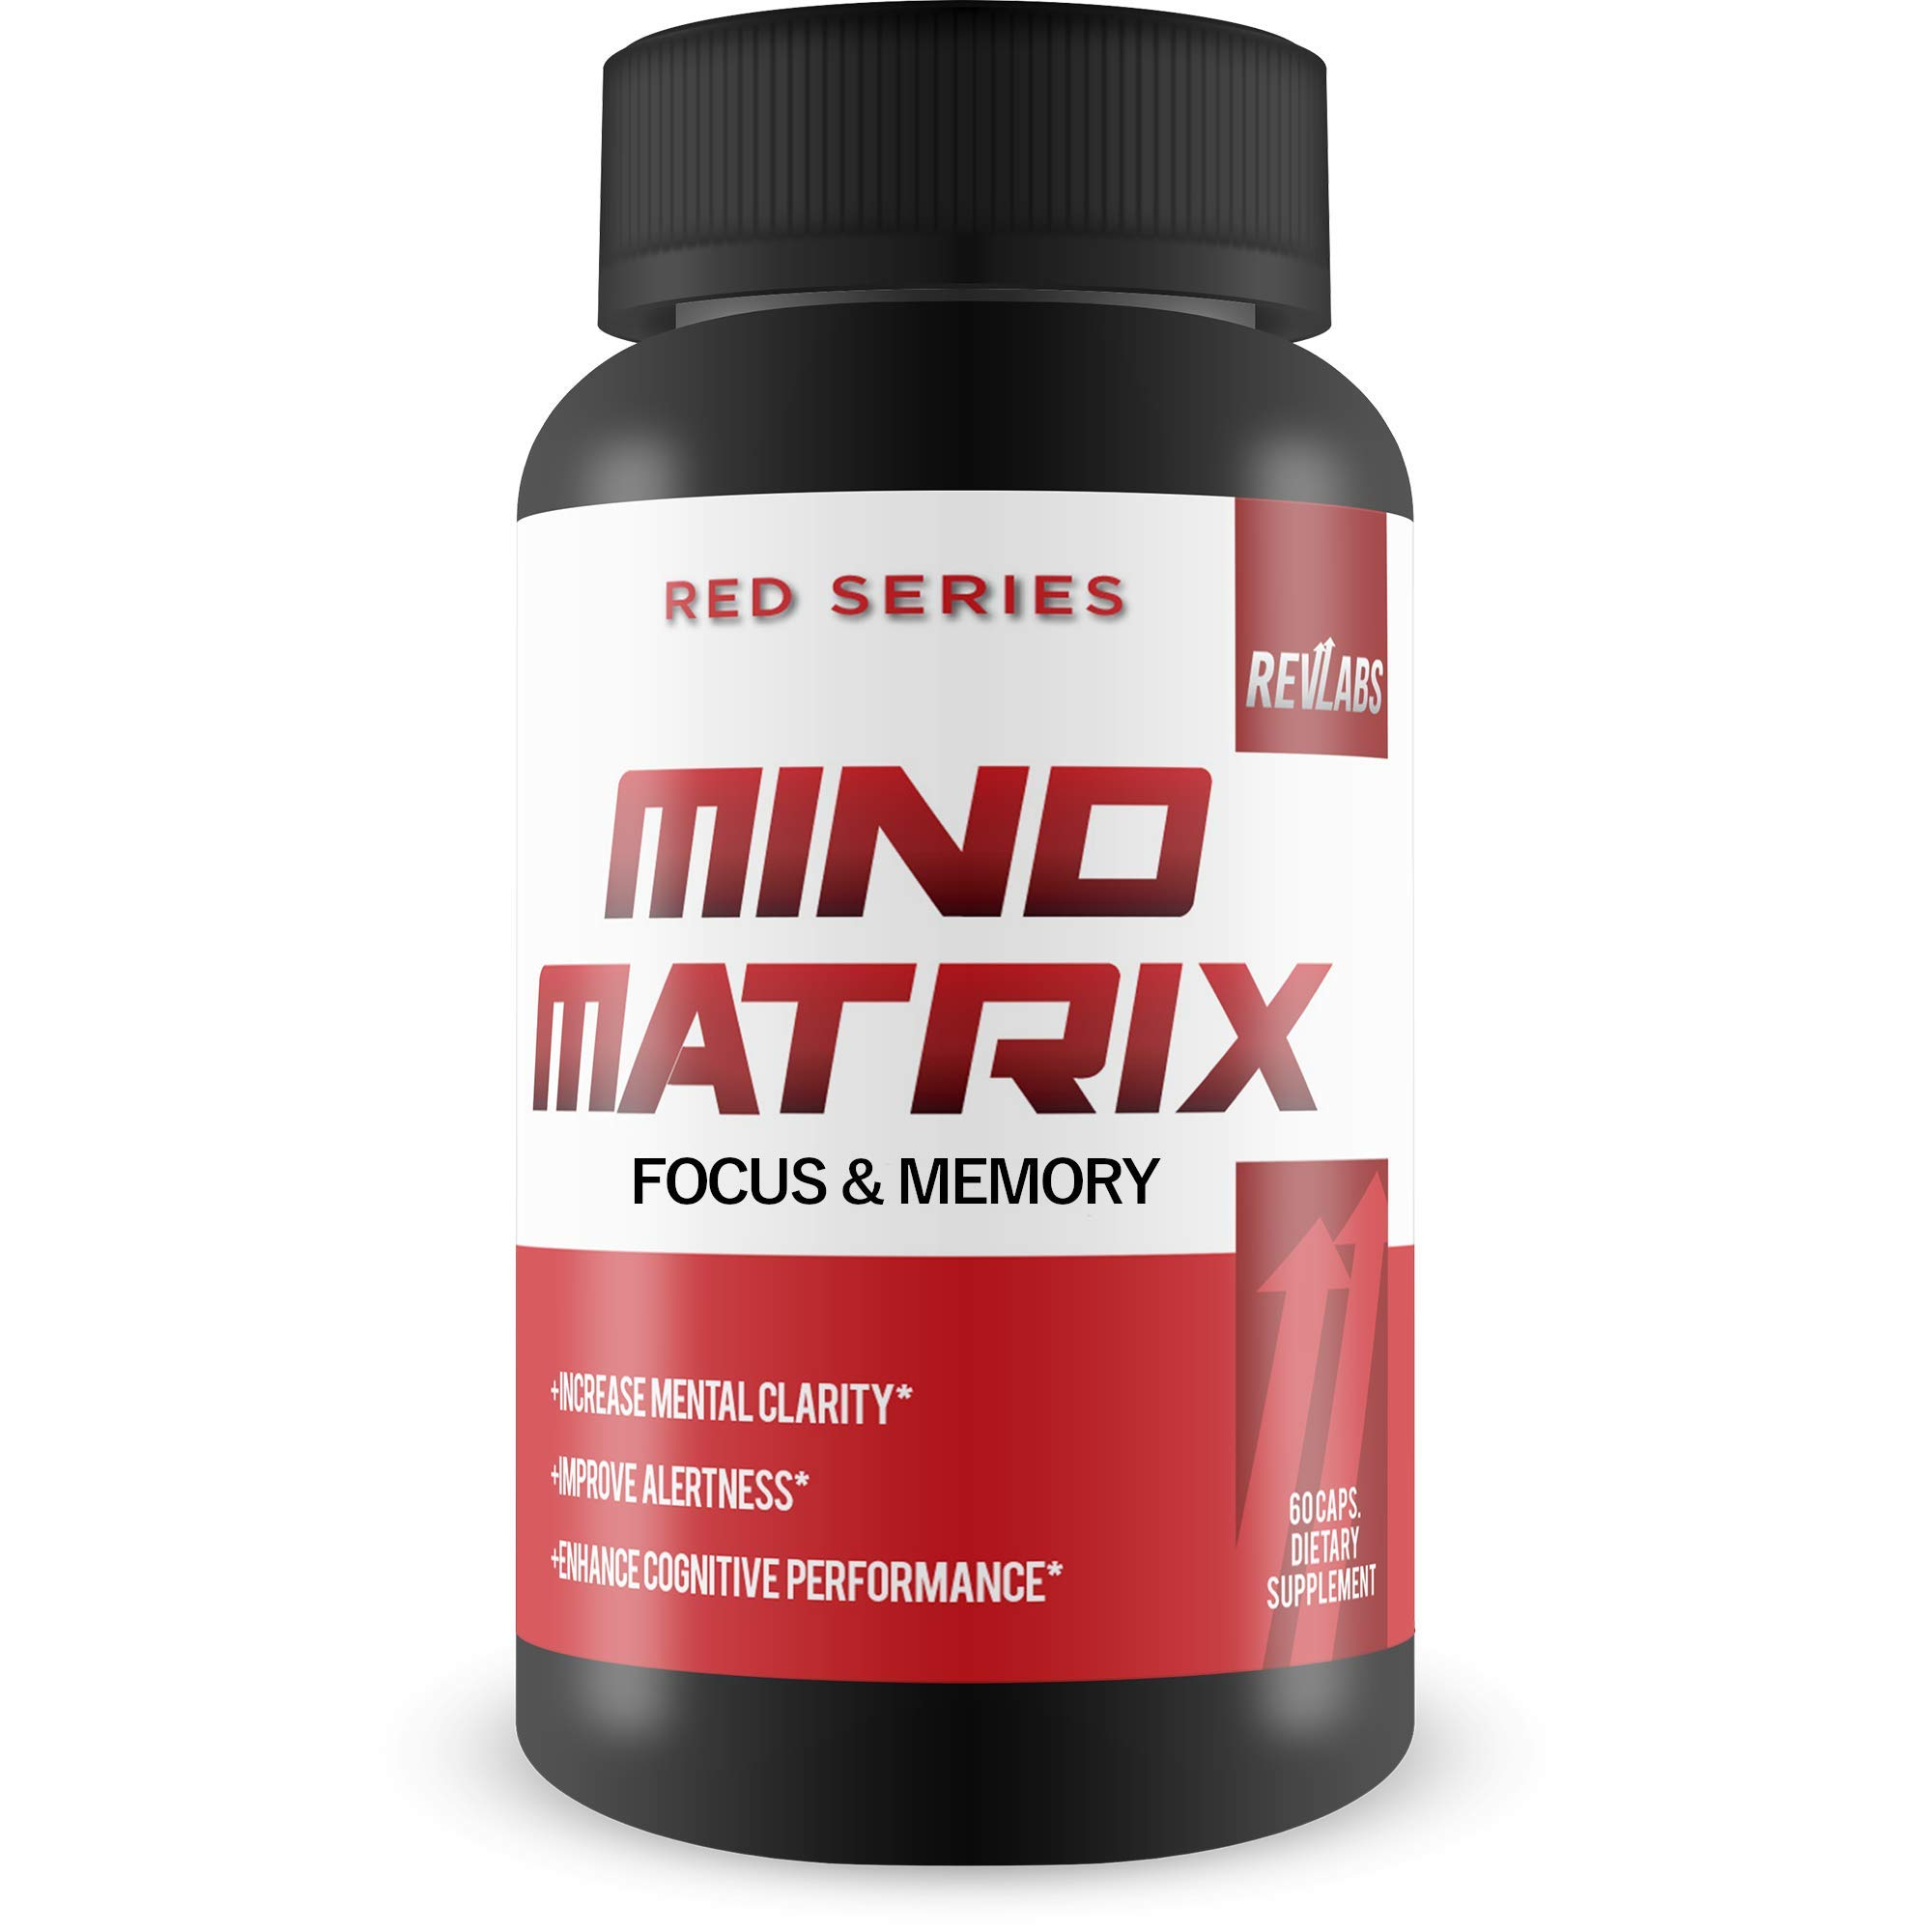 Mind Matrix Memory, Focus & Clarity Formula - Brain Booster Nootropic Supplement Scientifically Formulated for Optimal Performance with Bocopa Monnieri and DMAE - g Fuel for IQ, 60 Cap by Rev Labs